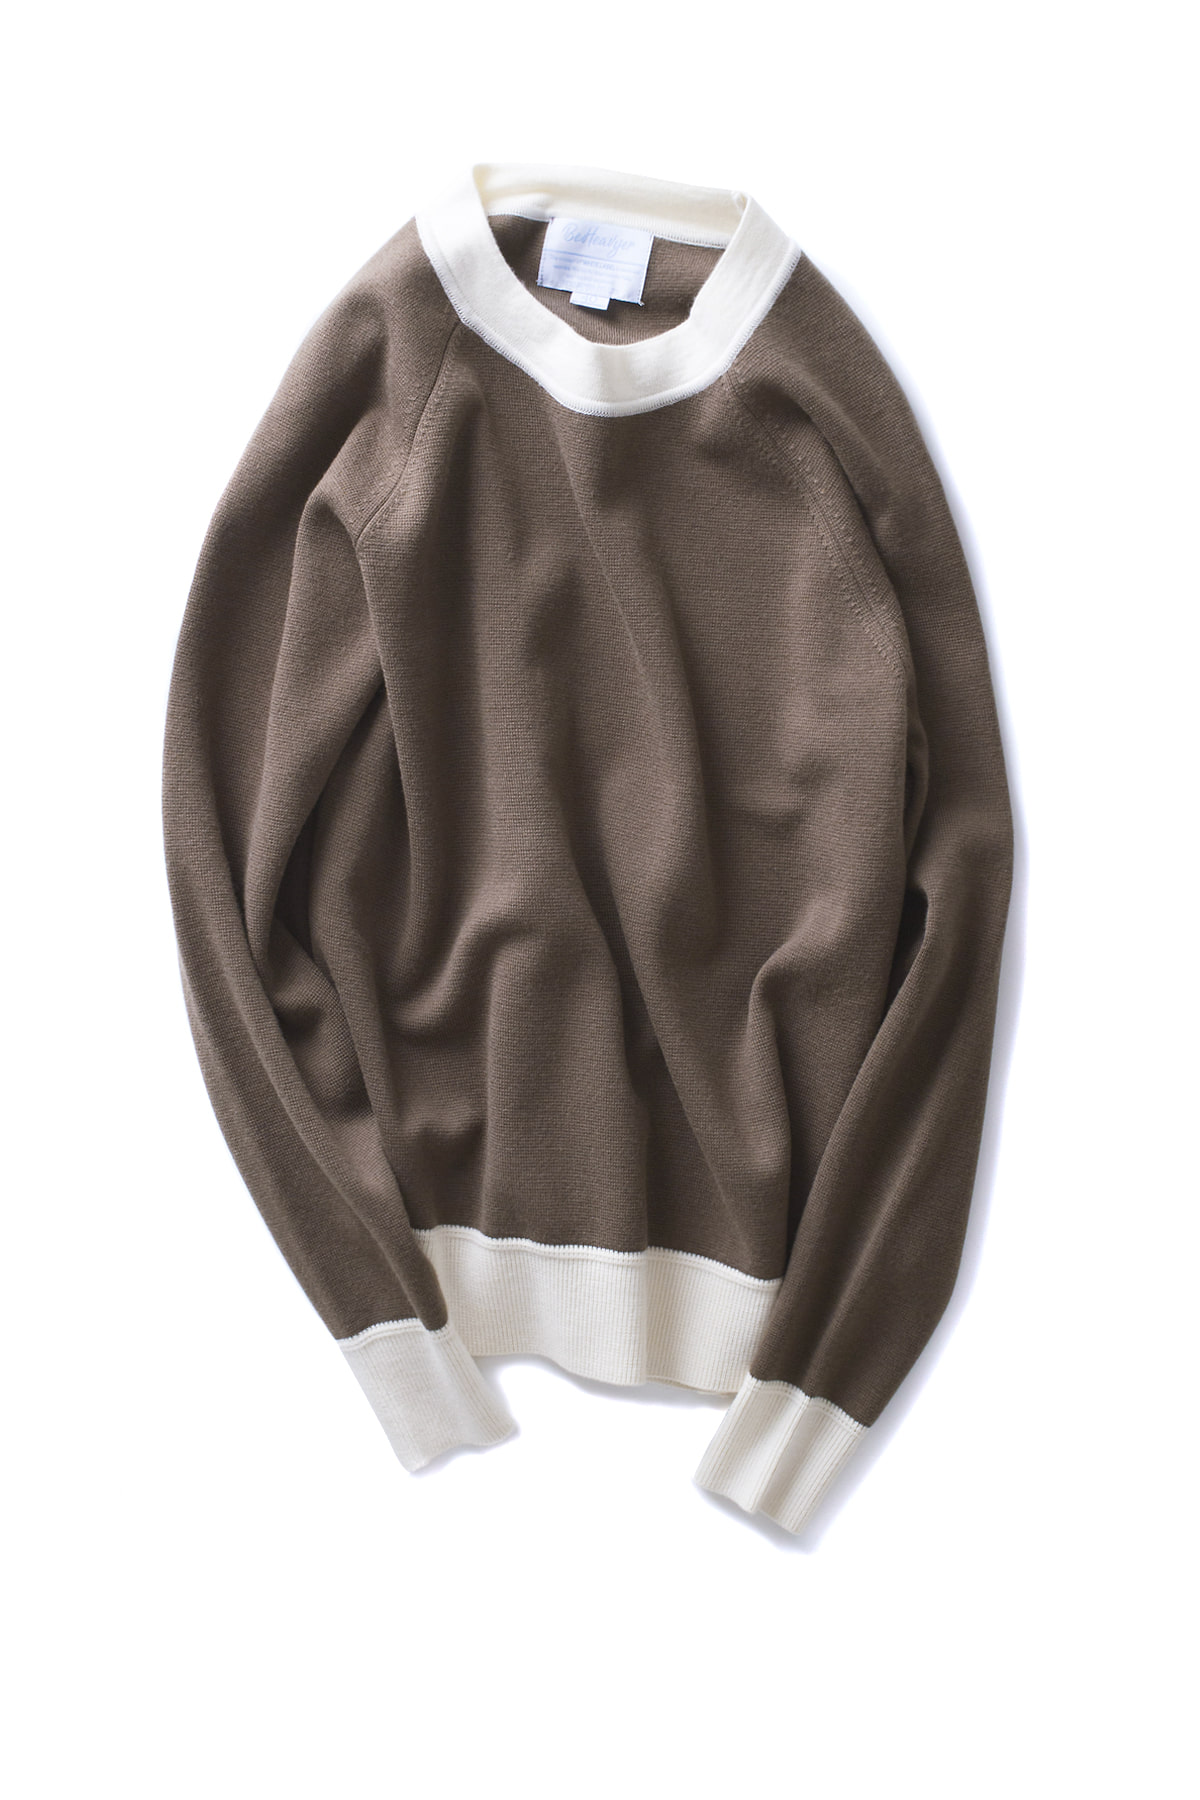 Be Heavyer : BHR Mockneck (Brown)